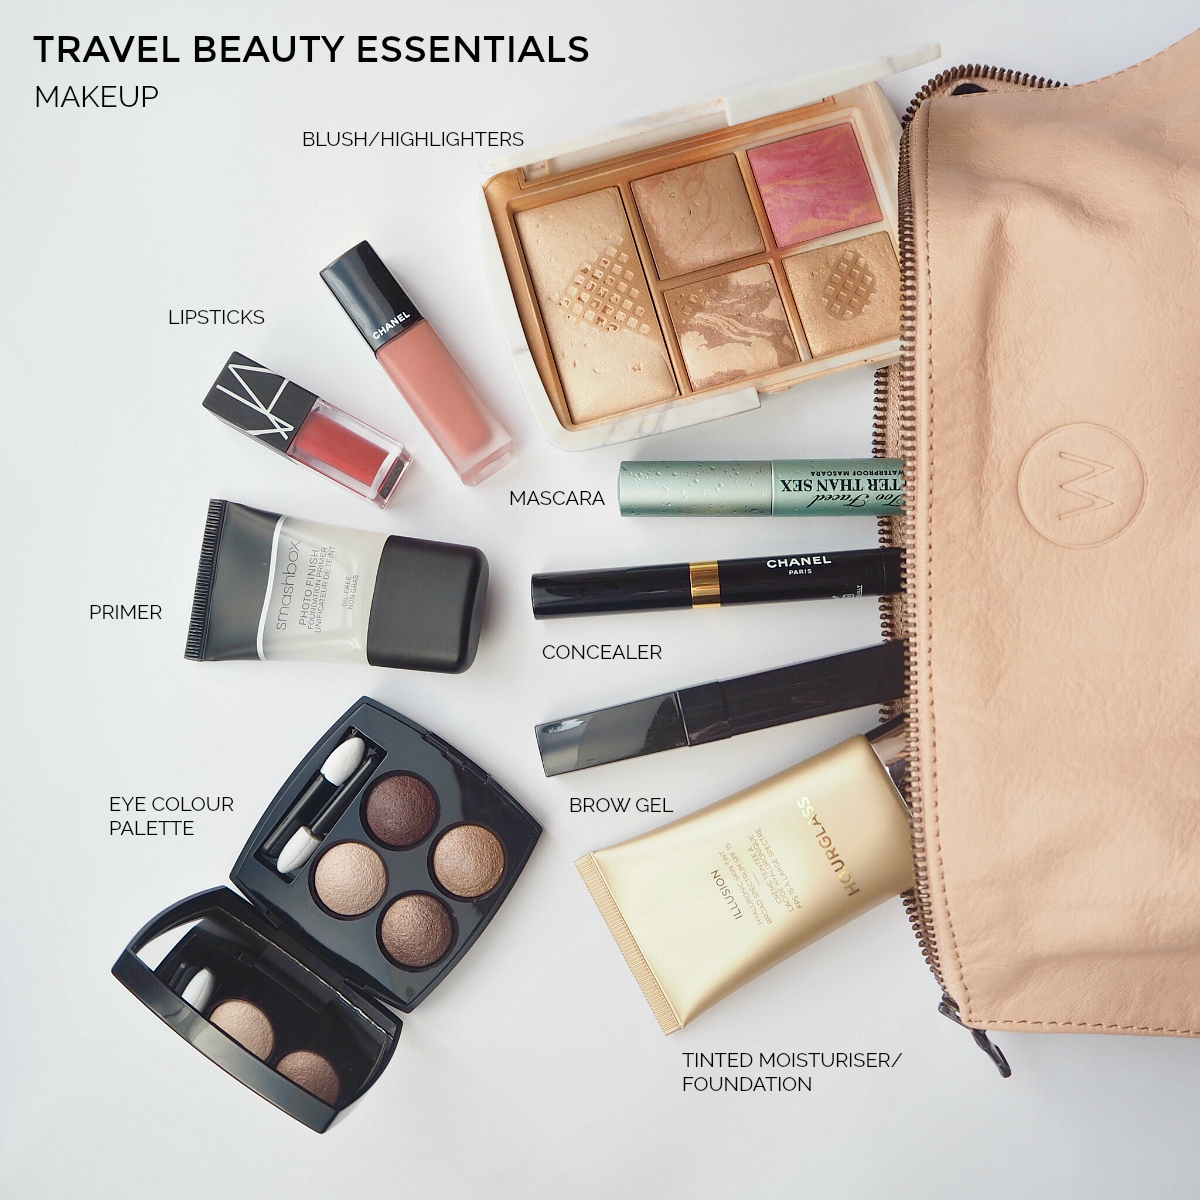 Travel beauty essentials: makeup | Styling You